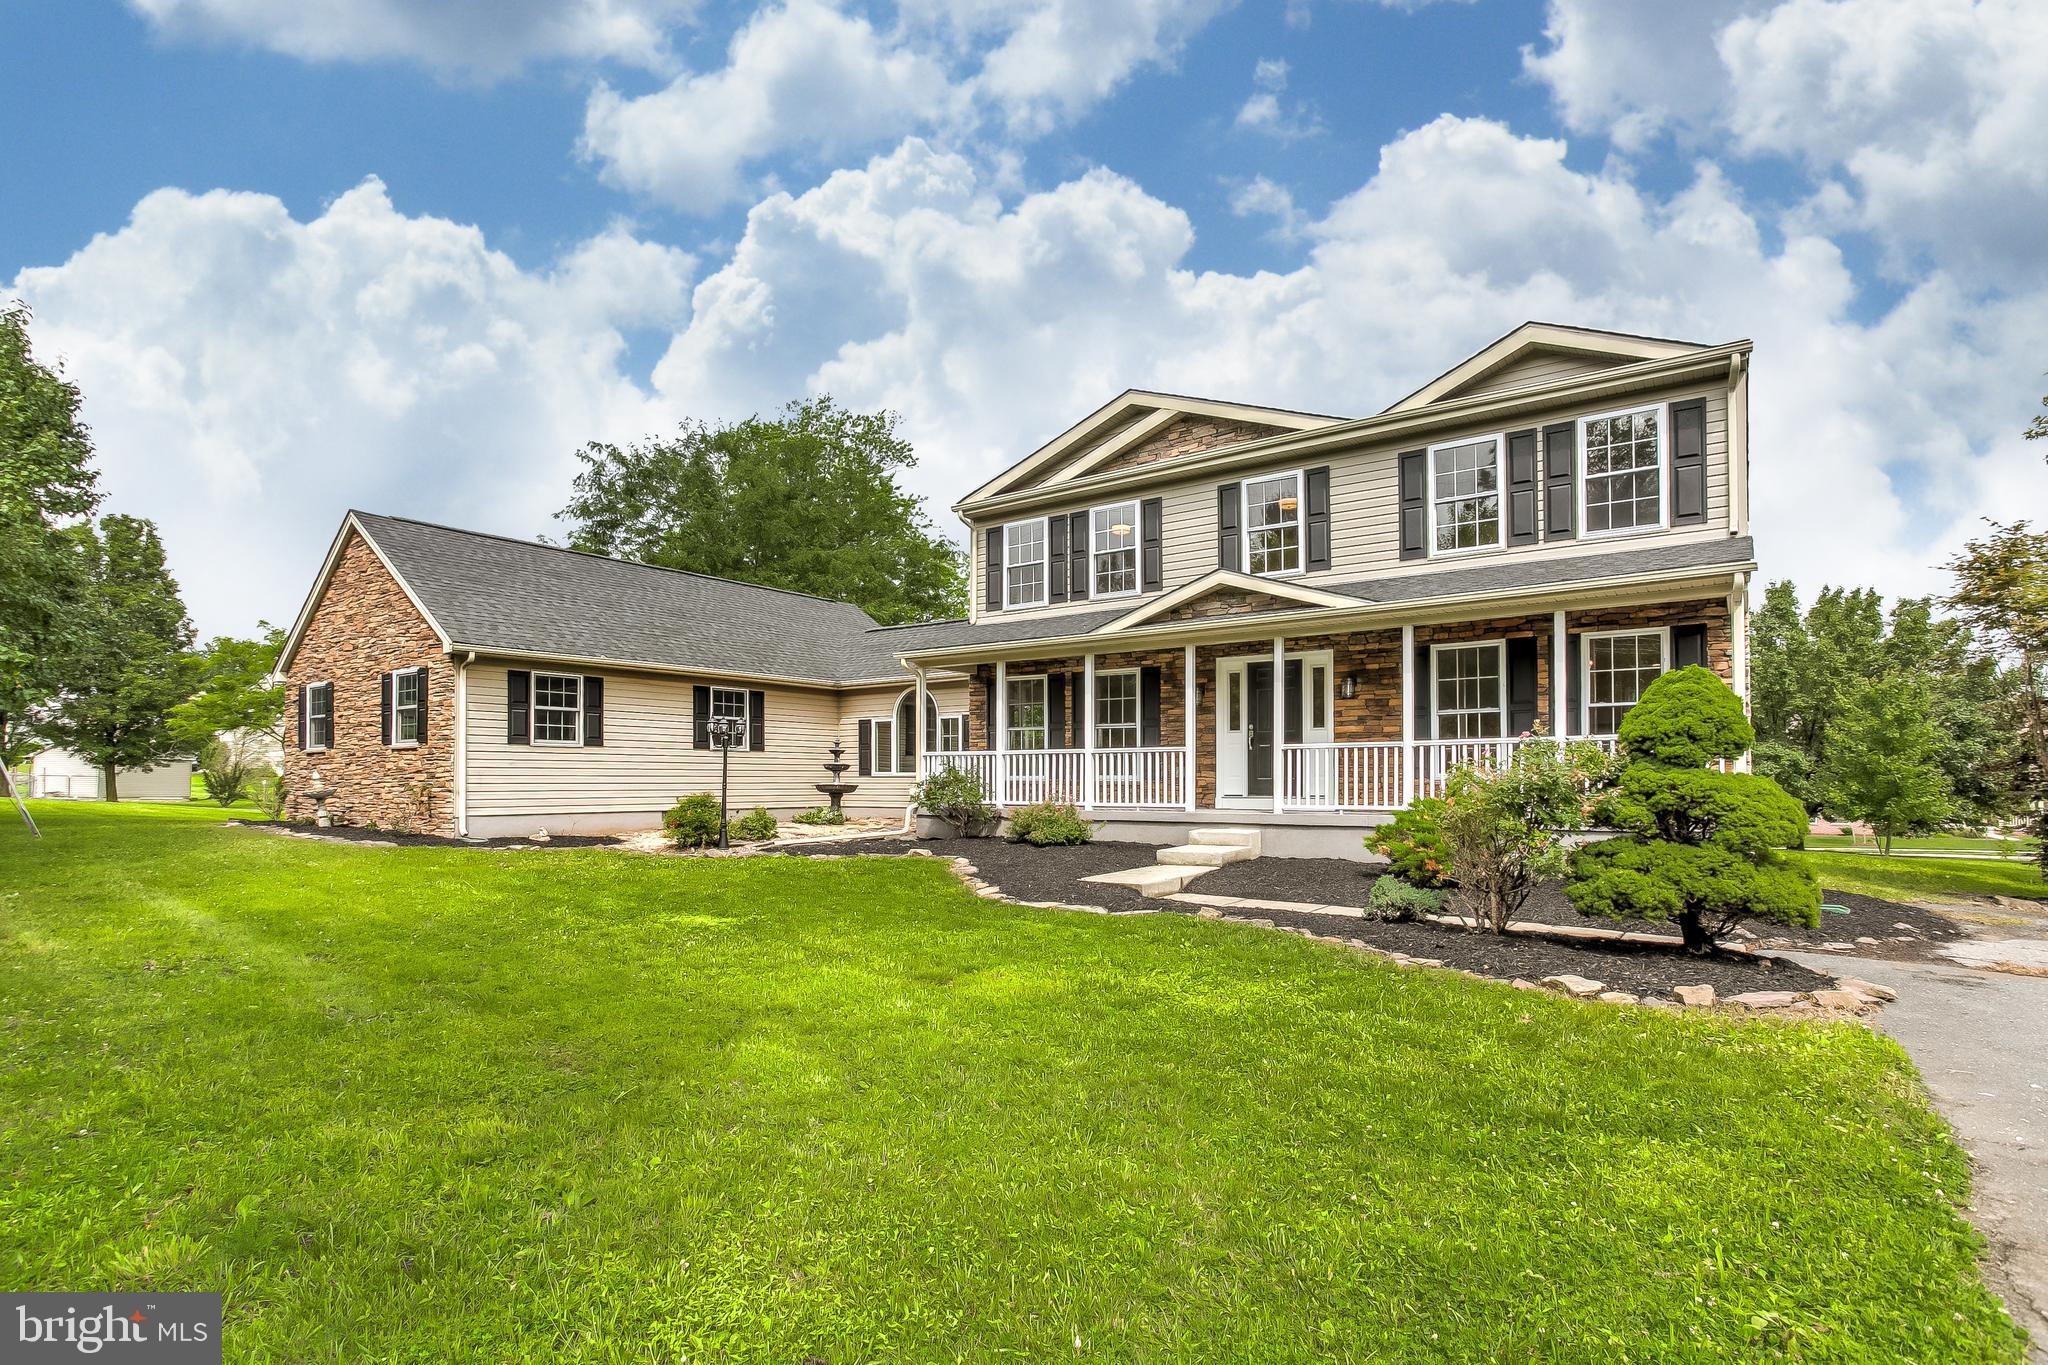 9808 HIDDEN VALLEY ROAD, PERRY HALL, MD 21128